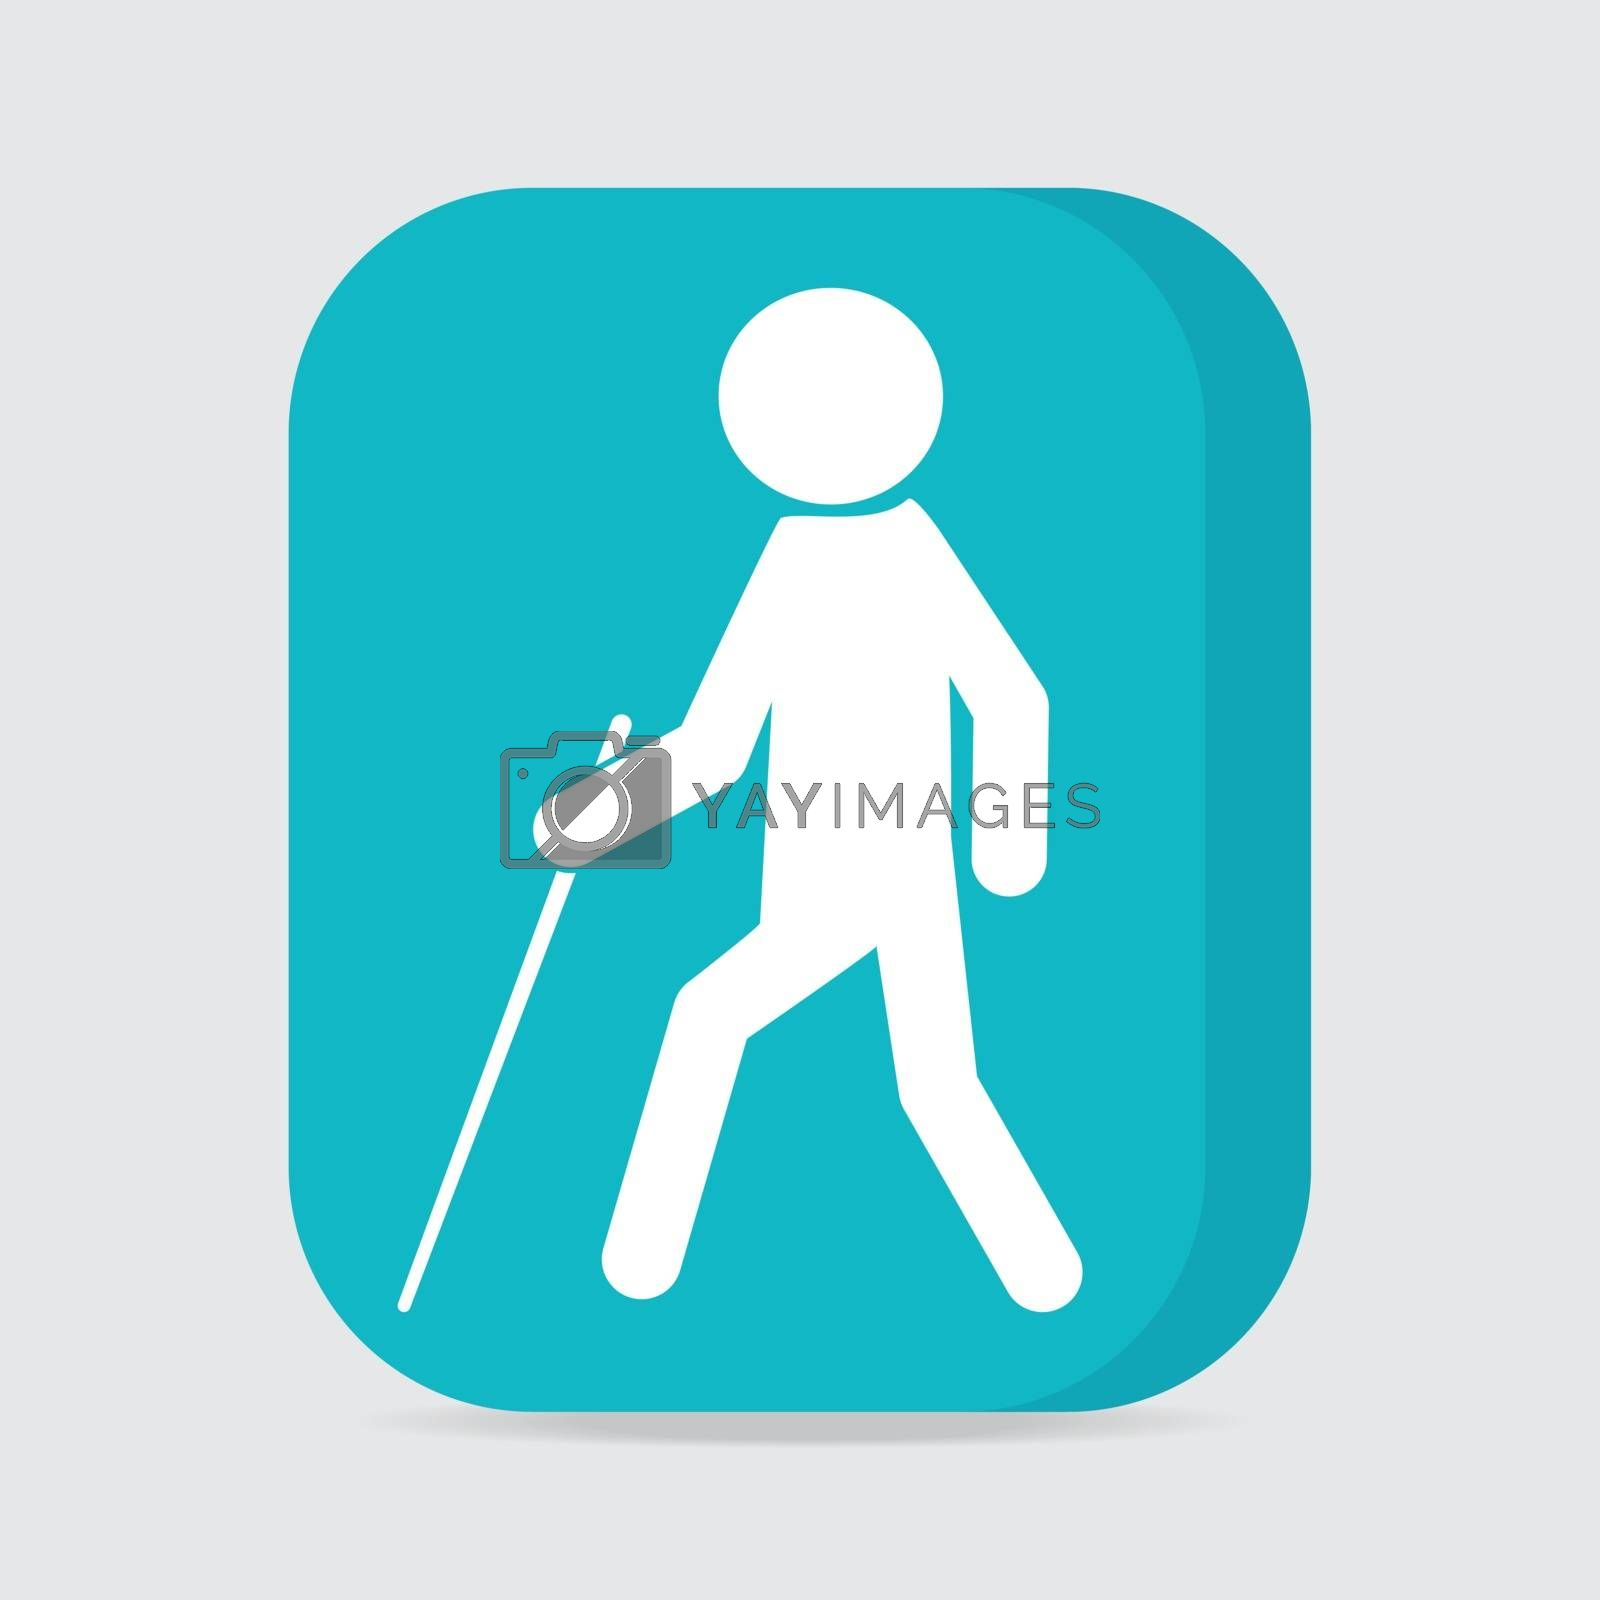 Blind man with stick symbol illustration